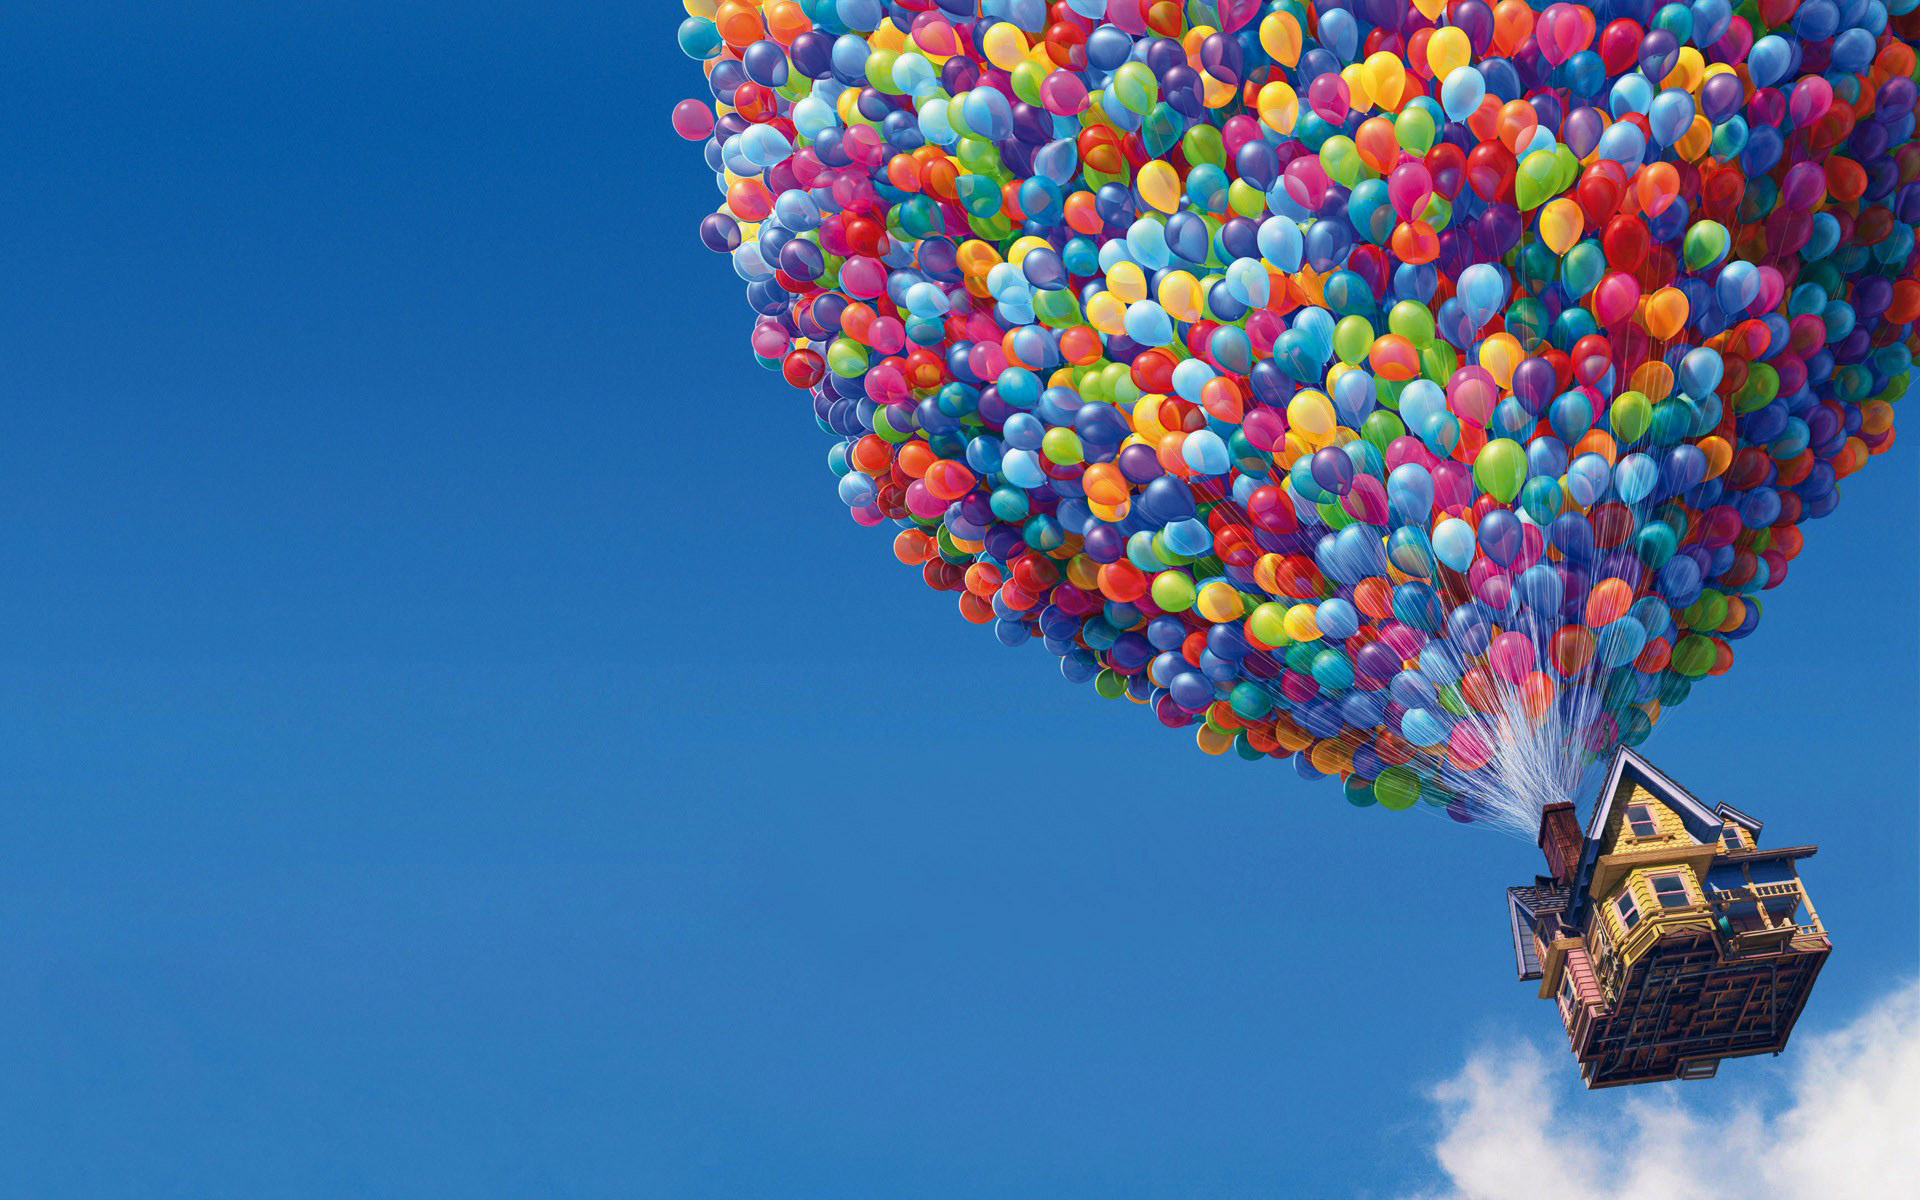 UP Movie Balloons House Wallpapers HD Wallpapers 1920x1200